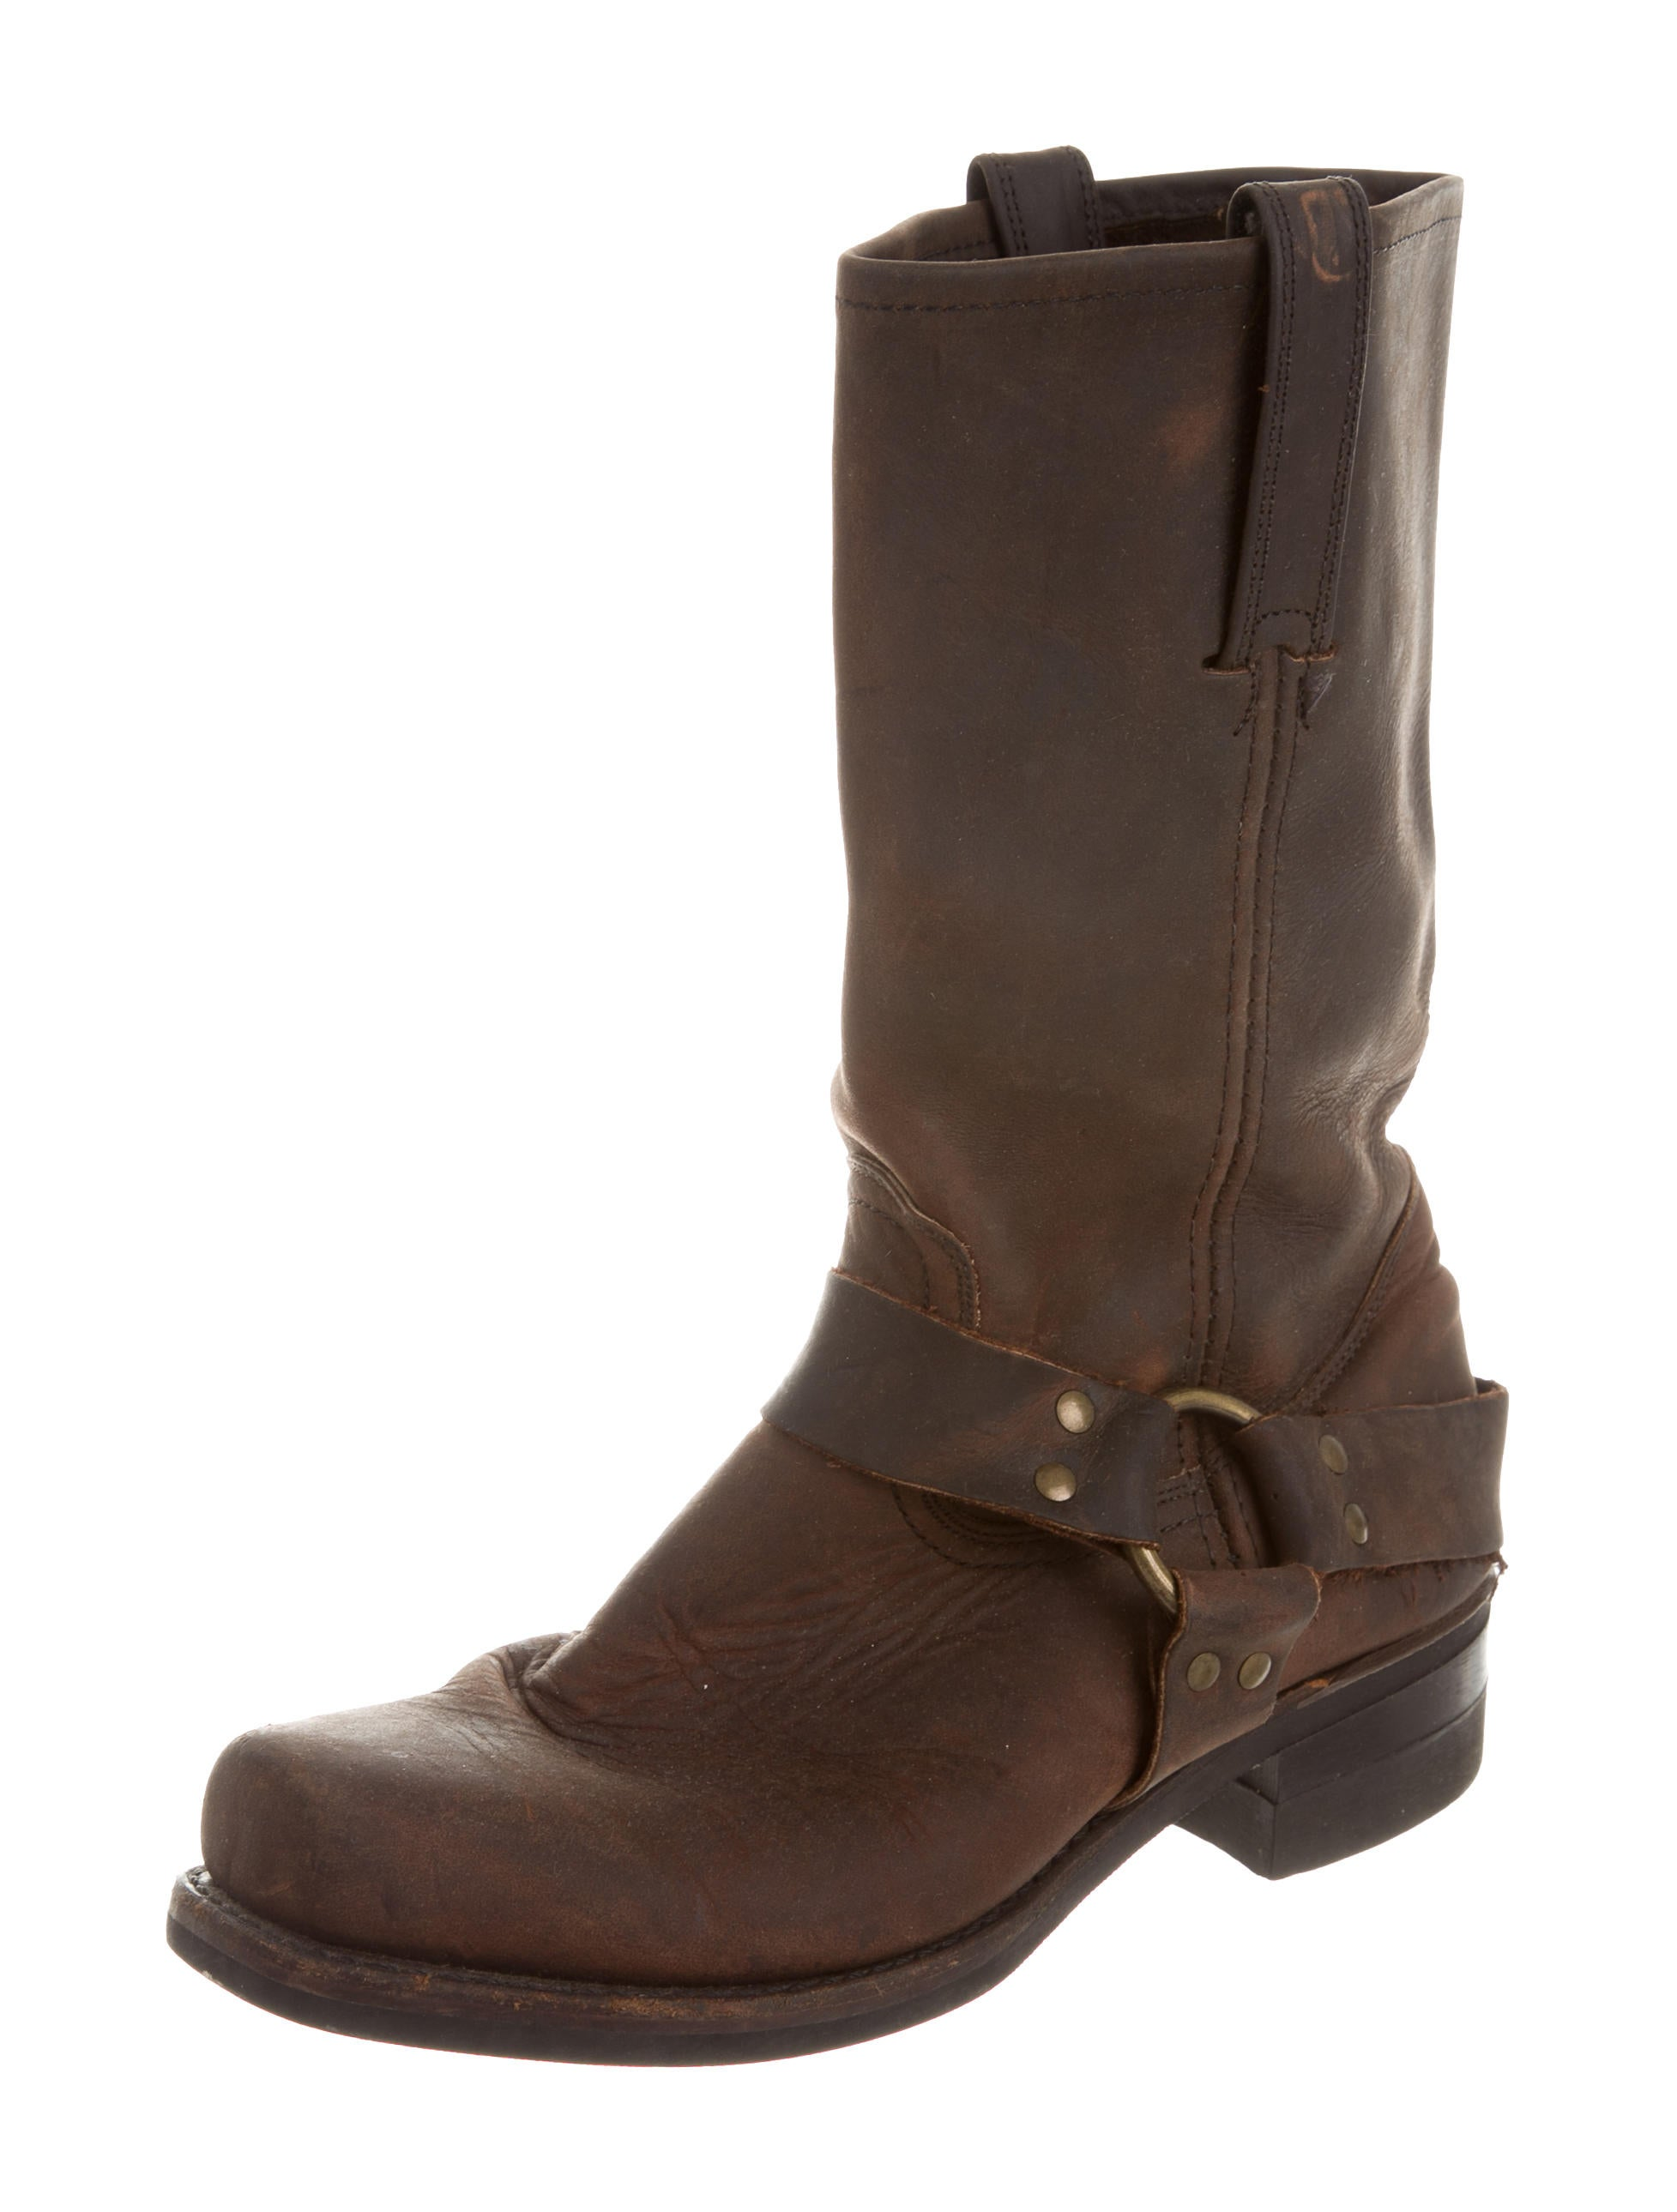 frye suede square toe boots shoes wf820865 the realreal